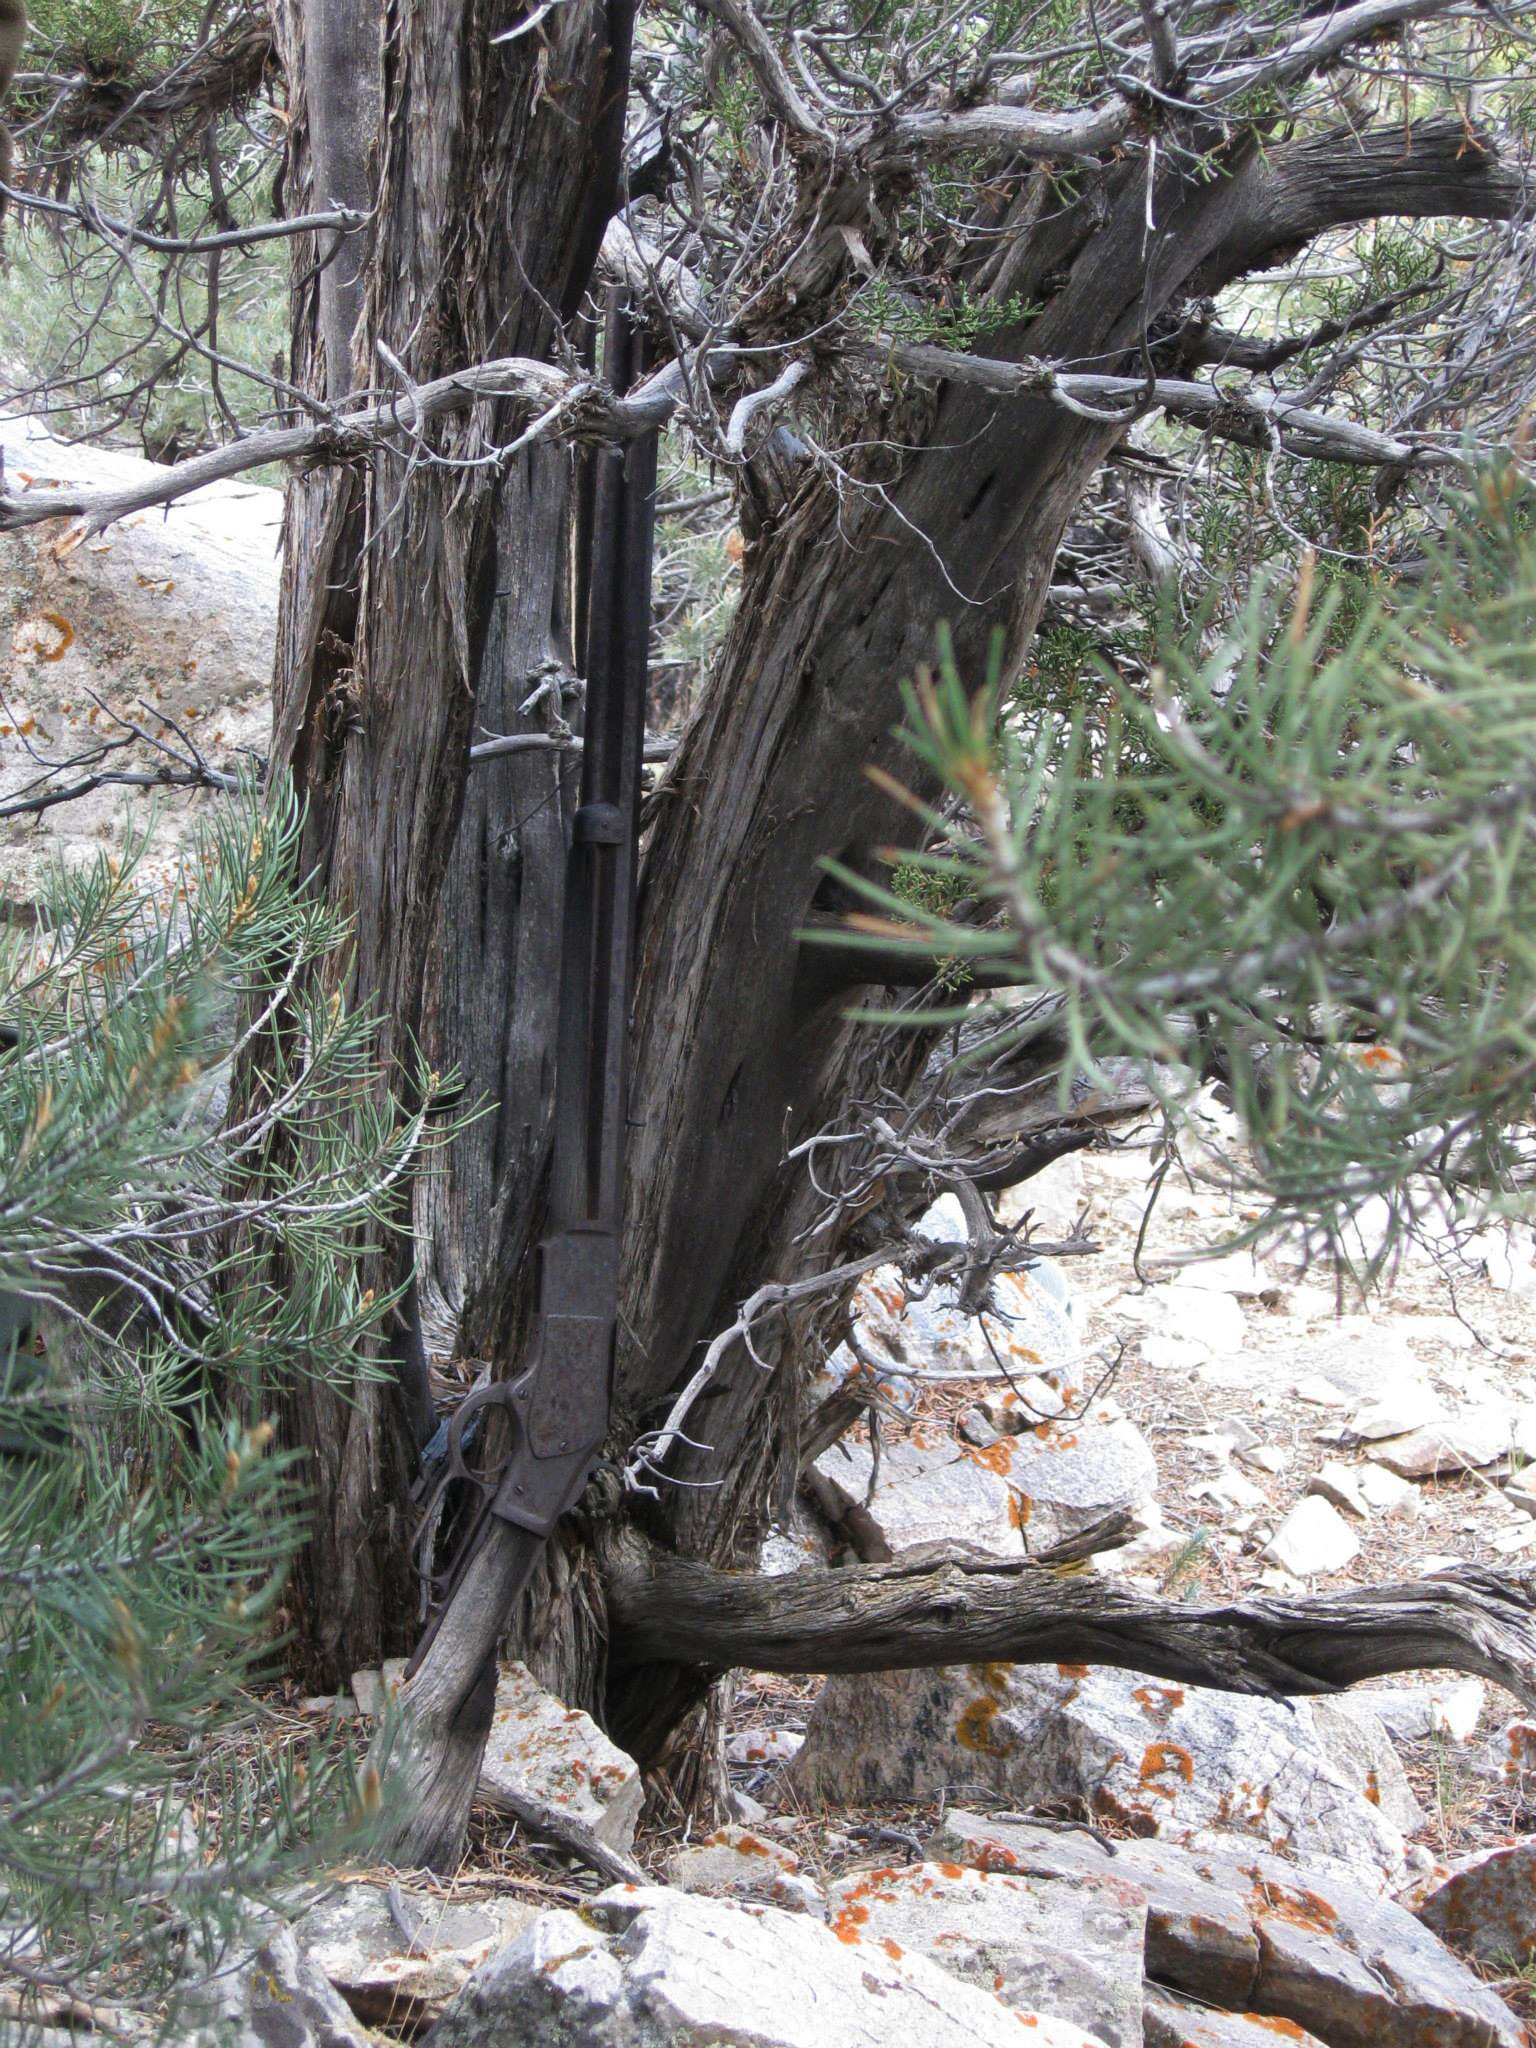 "FILE - This image provided by the Great Basin National Park shows a Winchester Model 1873 rifle found in Nevada. The gun made in 1882 was found propped against a juniper tree in Great Basin National Park in November during an archaeological survey. rifle discovered five years ago leaning against a juniper tree at Great Basin National Park has a new home in an exhibit dedicated to the ""Forgotten Winchester"" at the park visitor center near the Nevada-Utah line. (National Park Service via AP, File)"